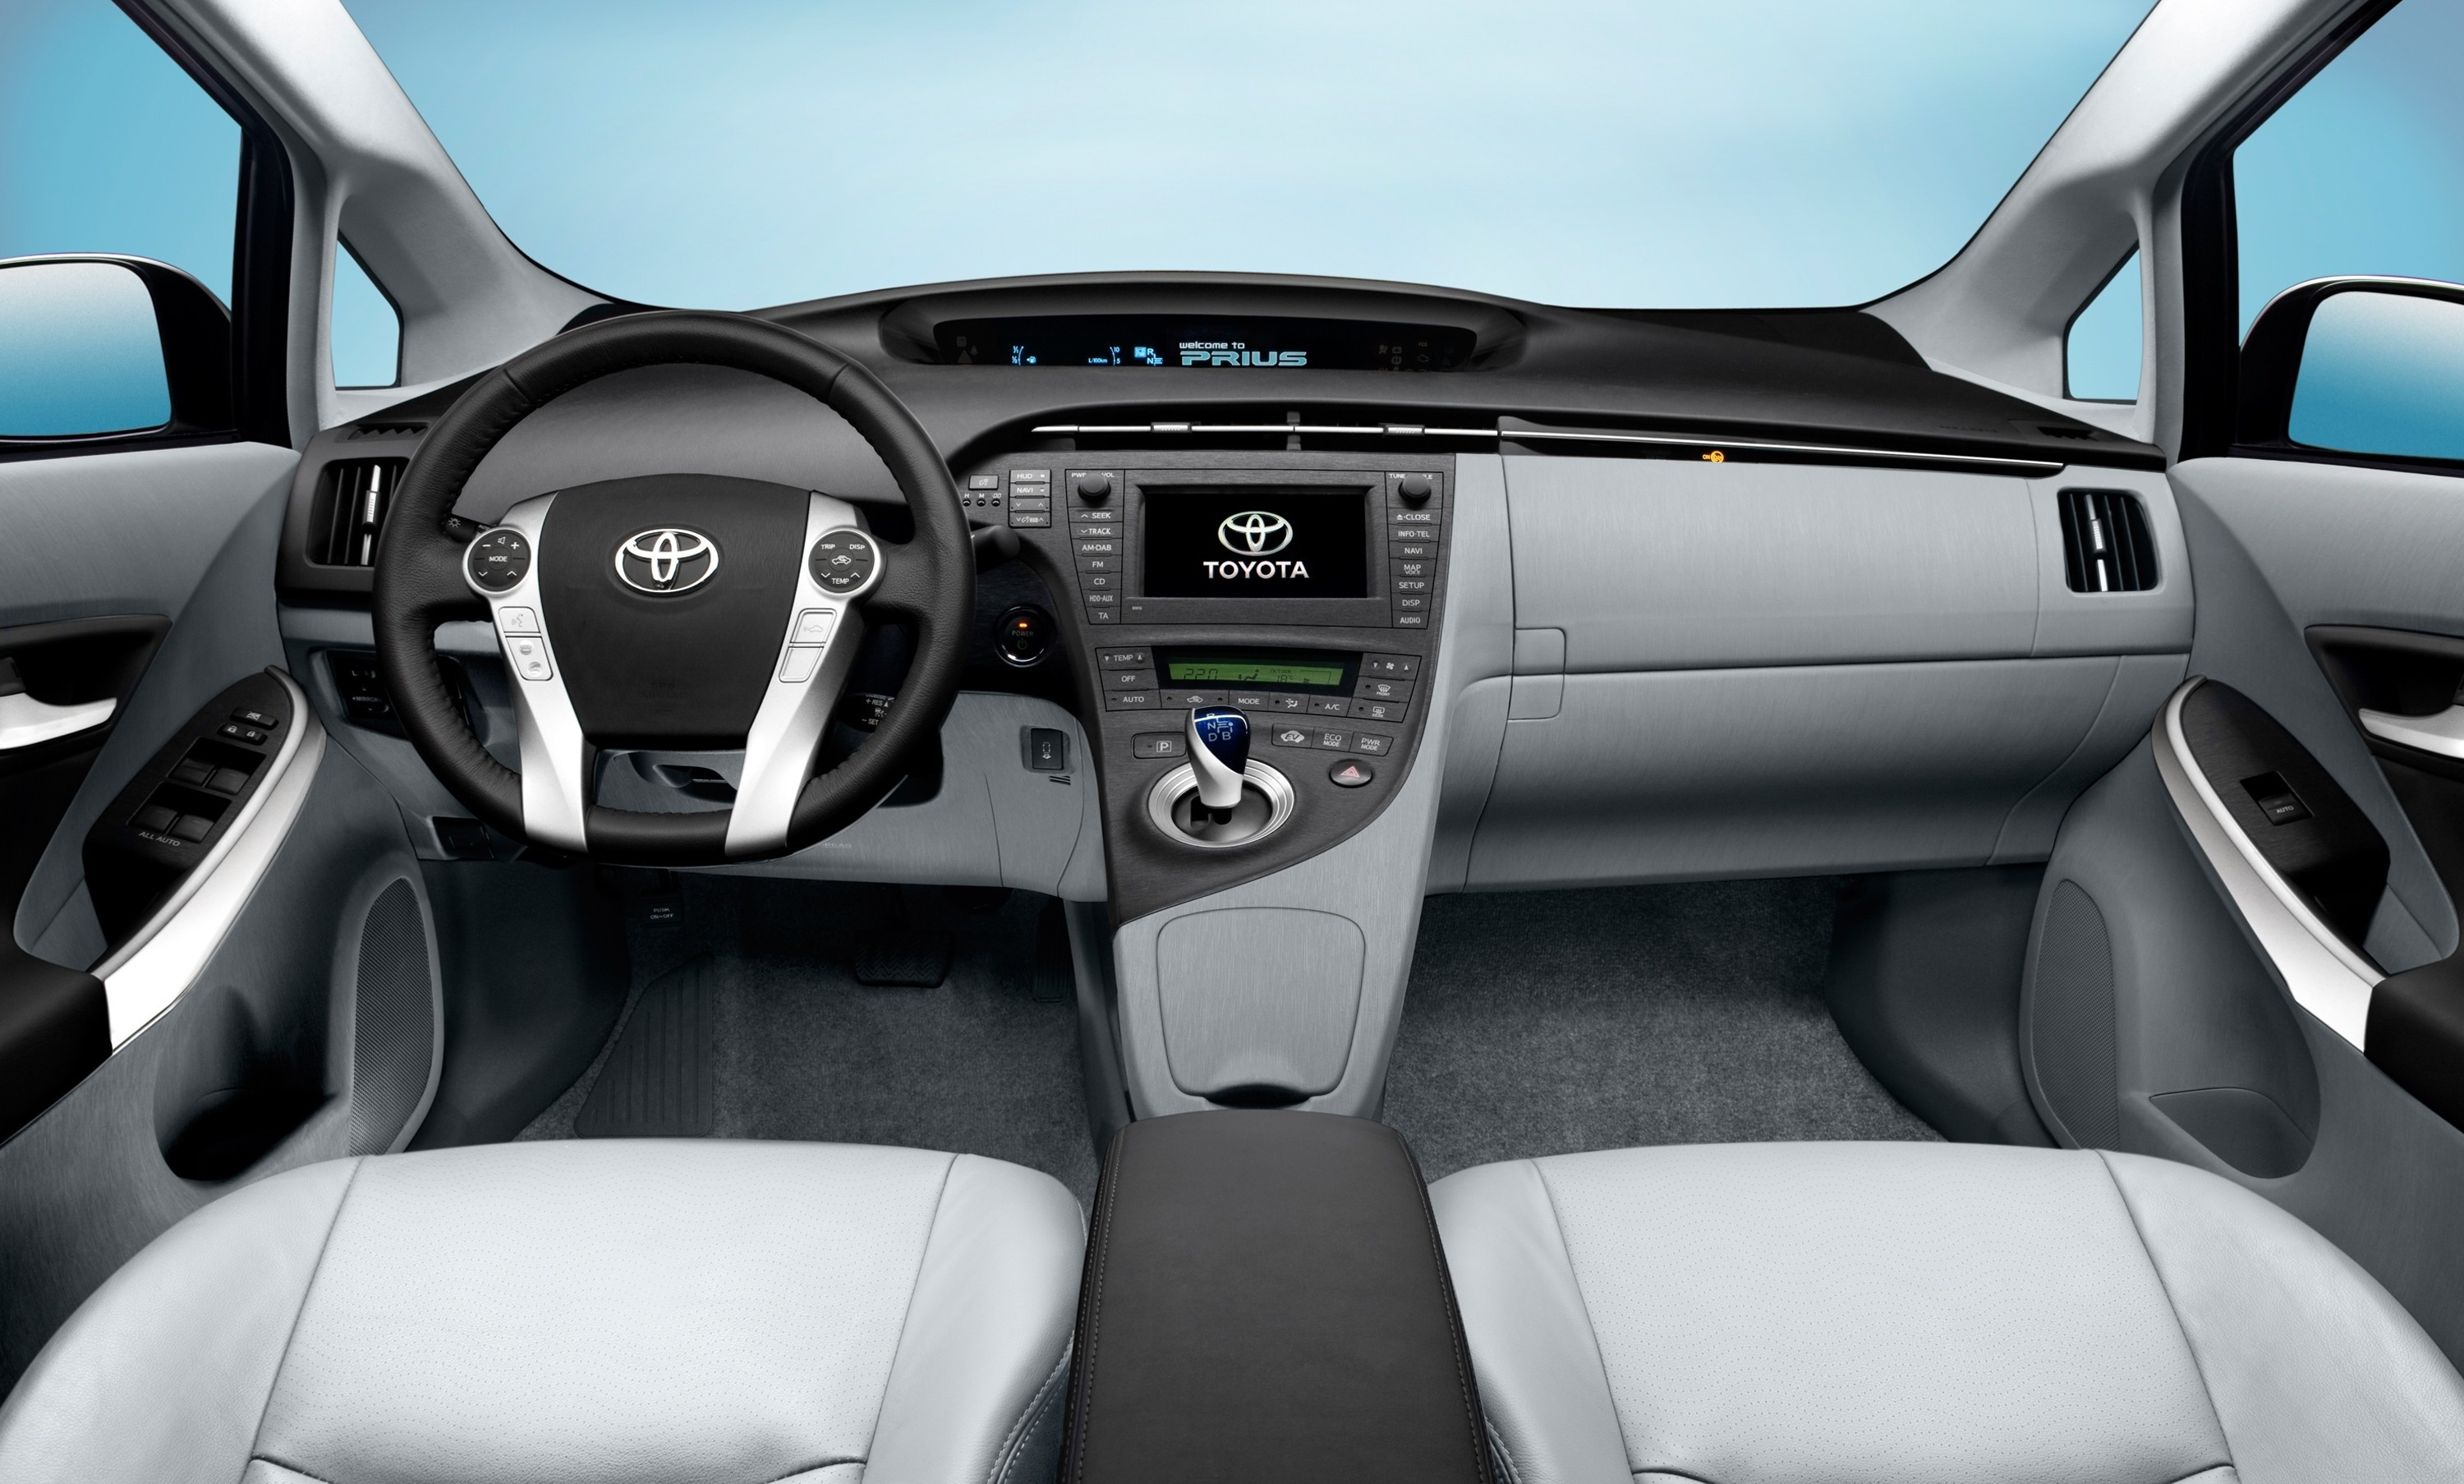 TOYOTA PRIUS Review and photos